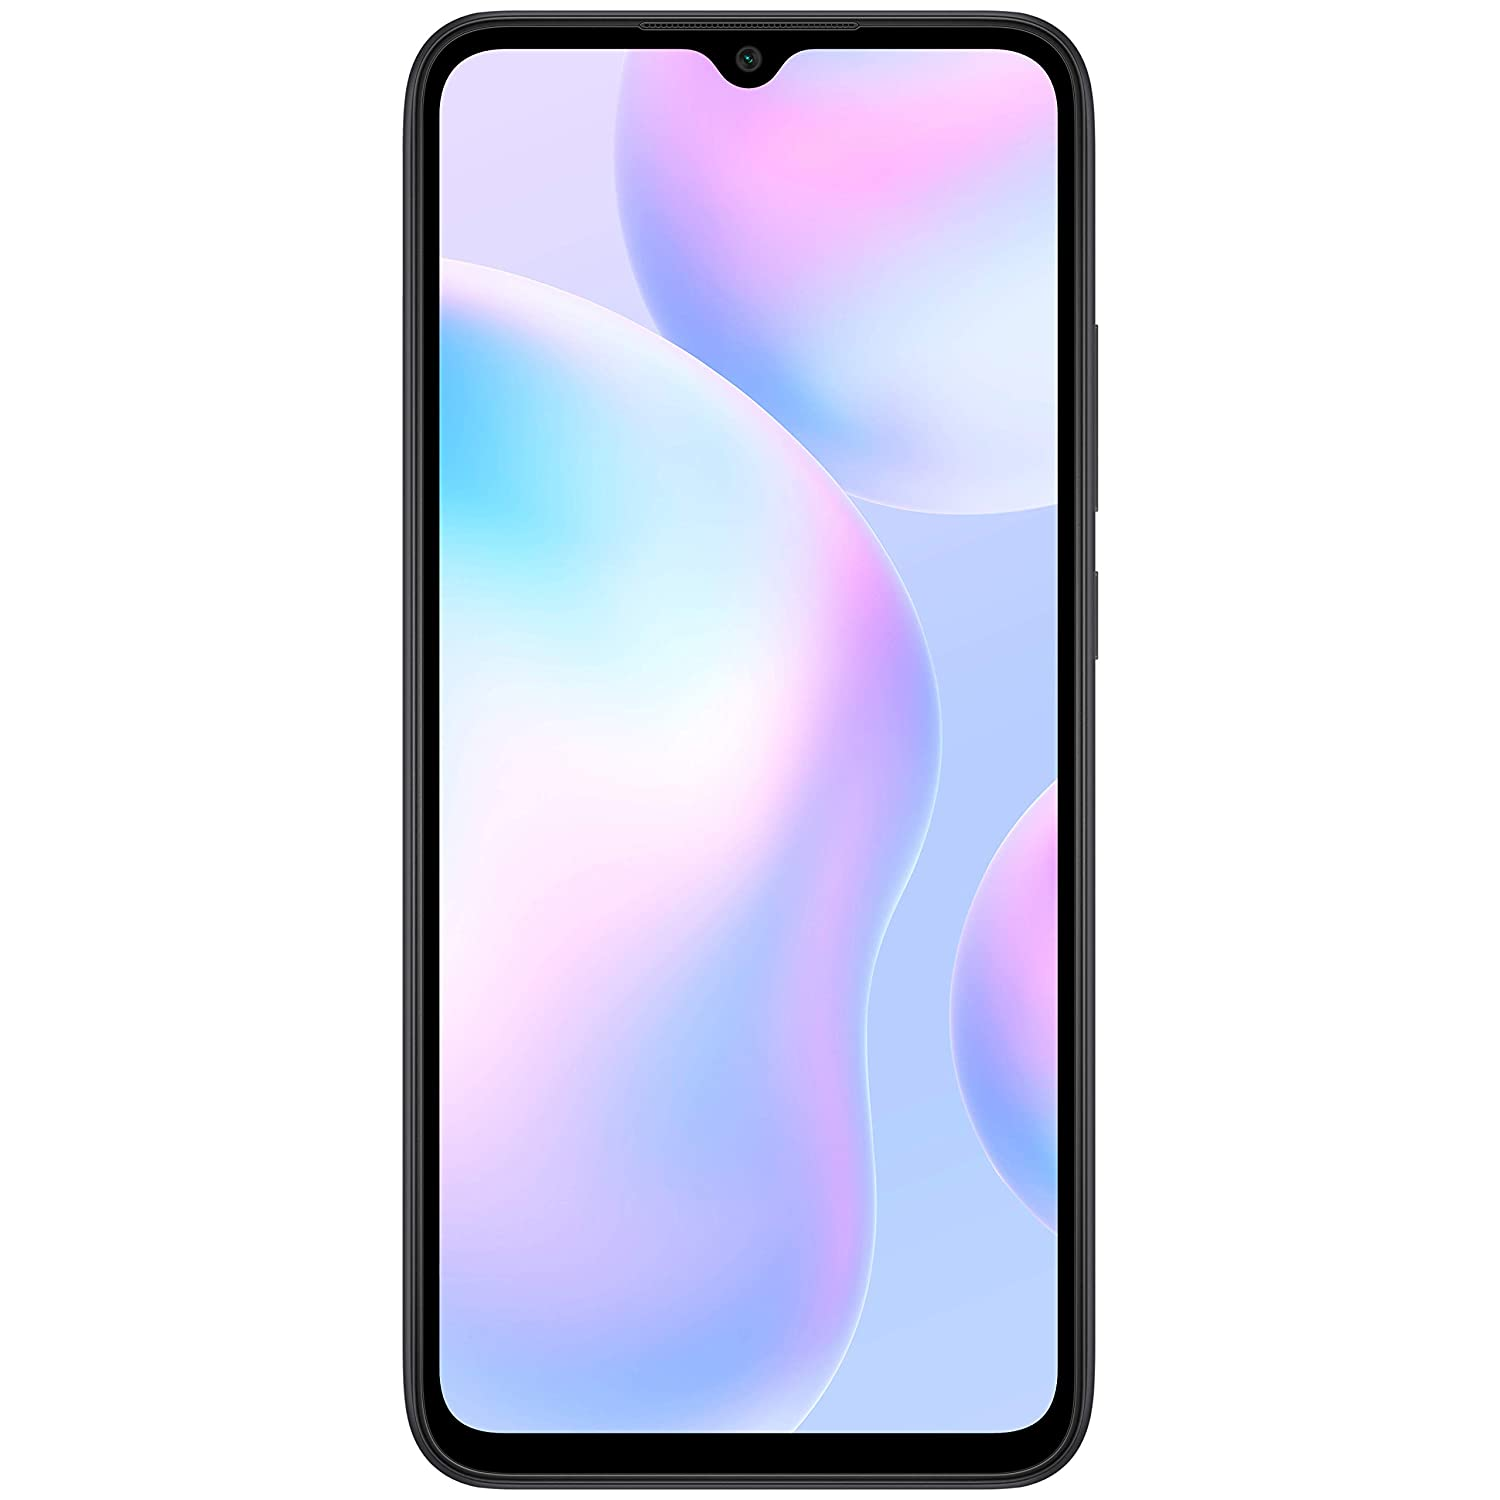 Redmi 9A (Midnight Black, 2GB RAM, 32GB Storage)